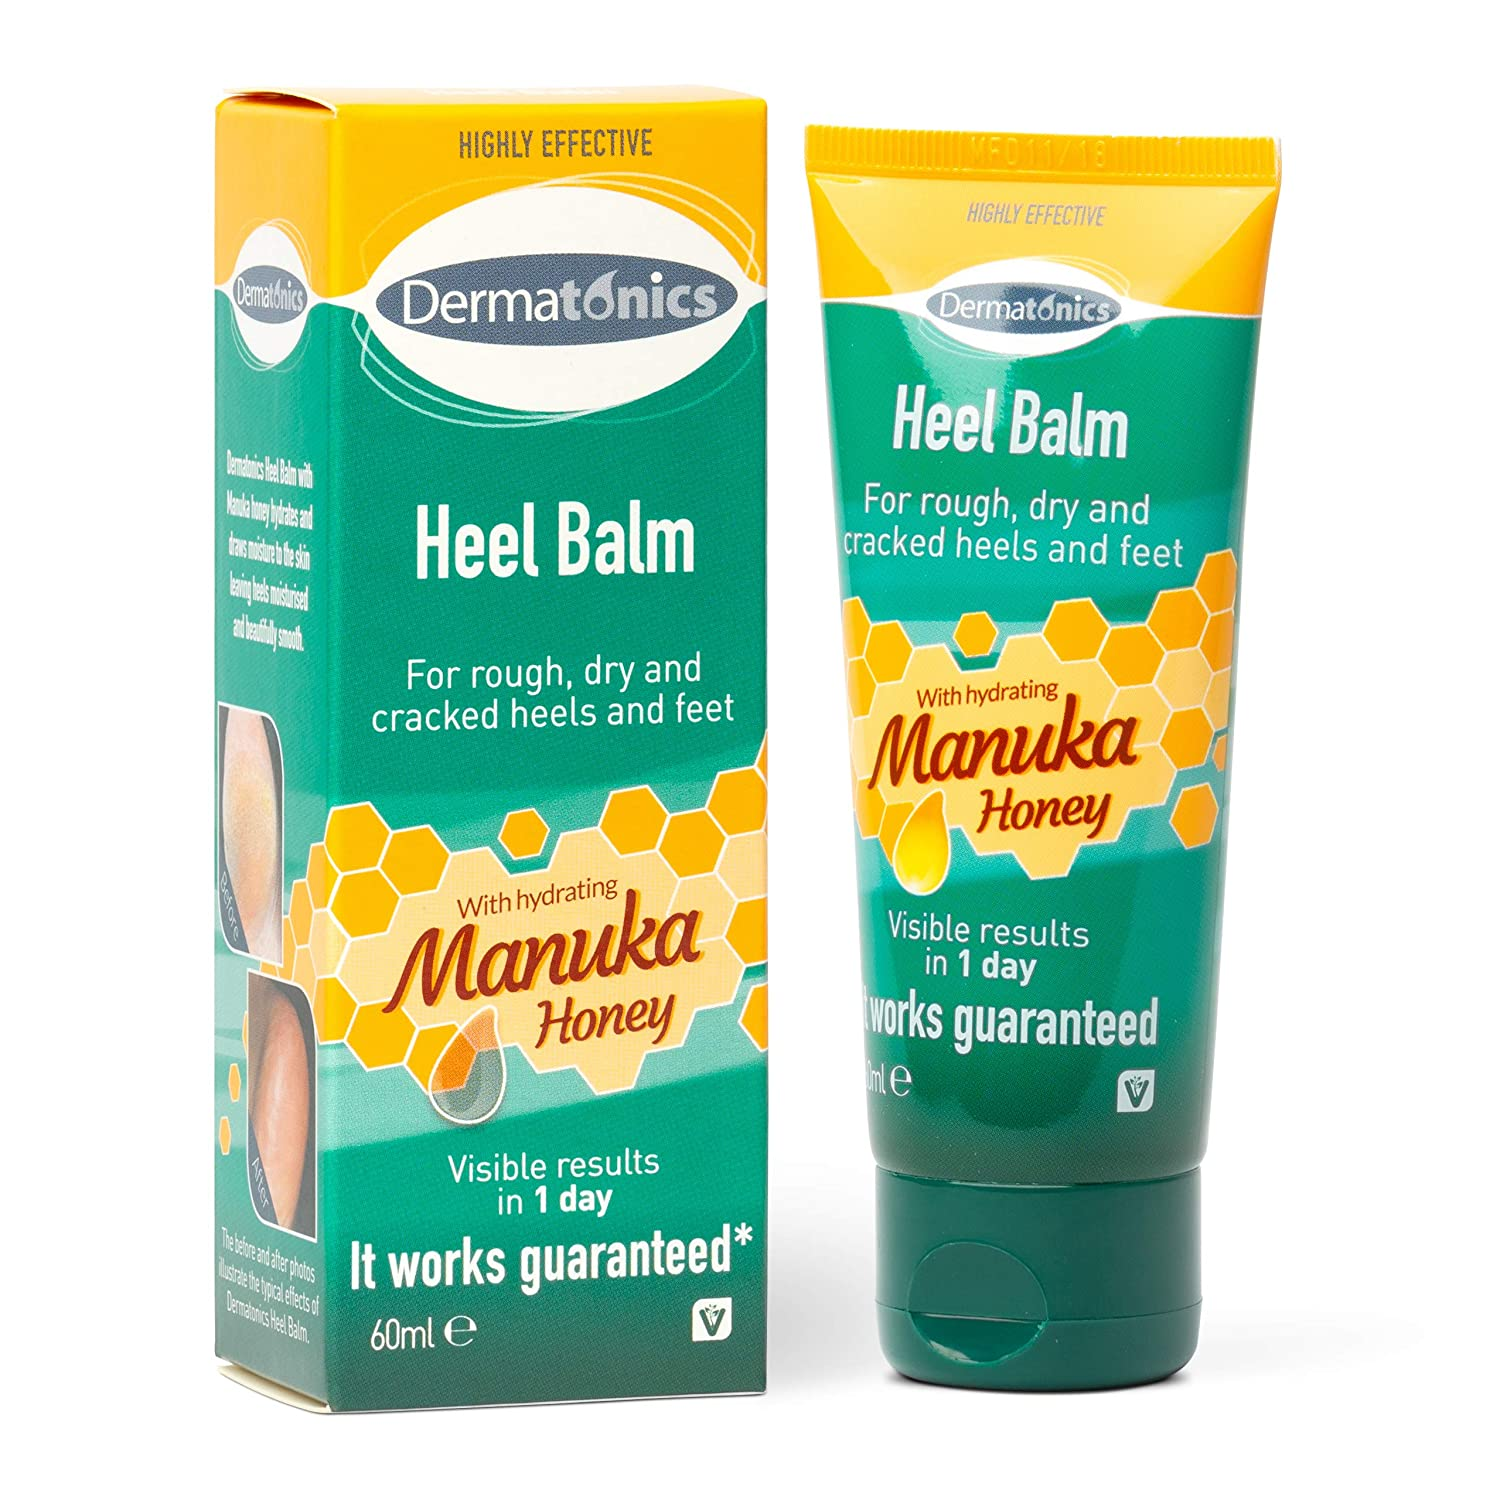 Dermatonics Manuka Honey Heel and Elbow Moisturizing & Exfoliating Cream for Dry and Cracked Heels | Dry Feet Treatment & Cracked Heel Repair for Rough, Dry and Cracked Feet, 2oz Tube